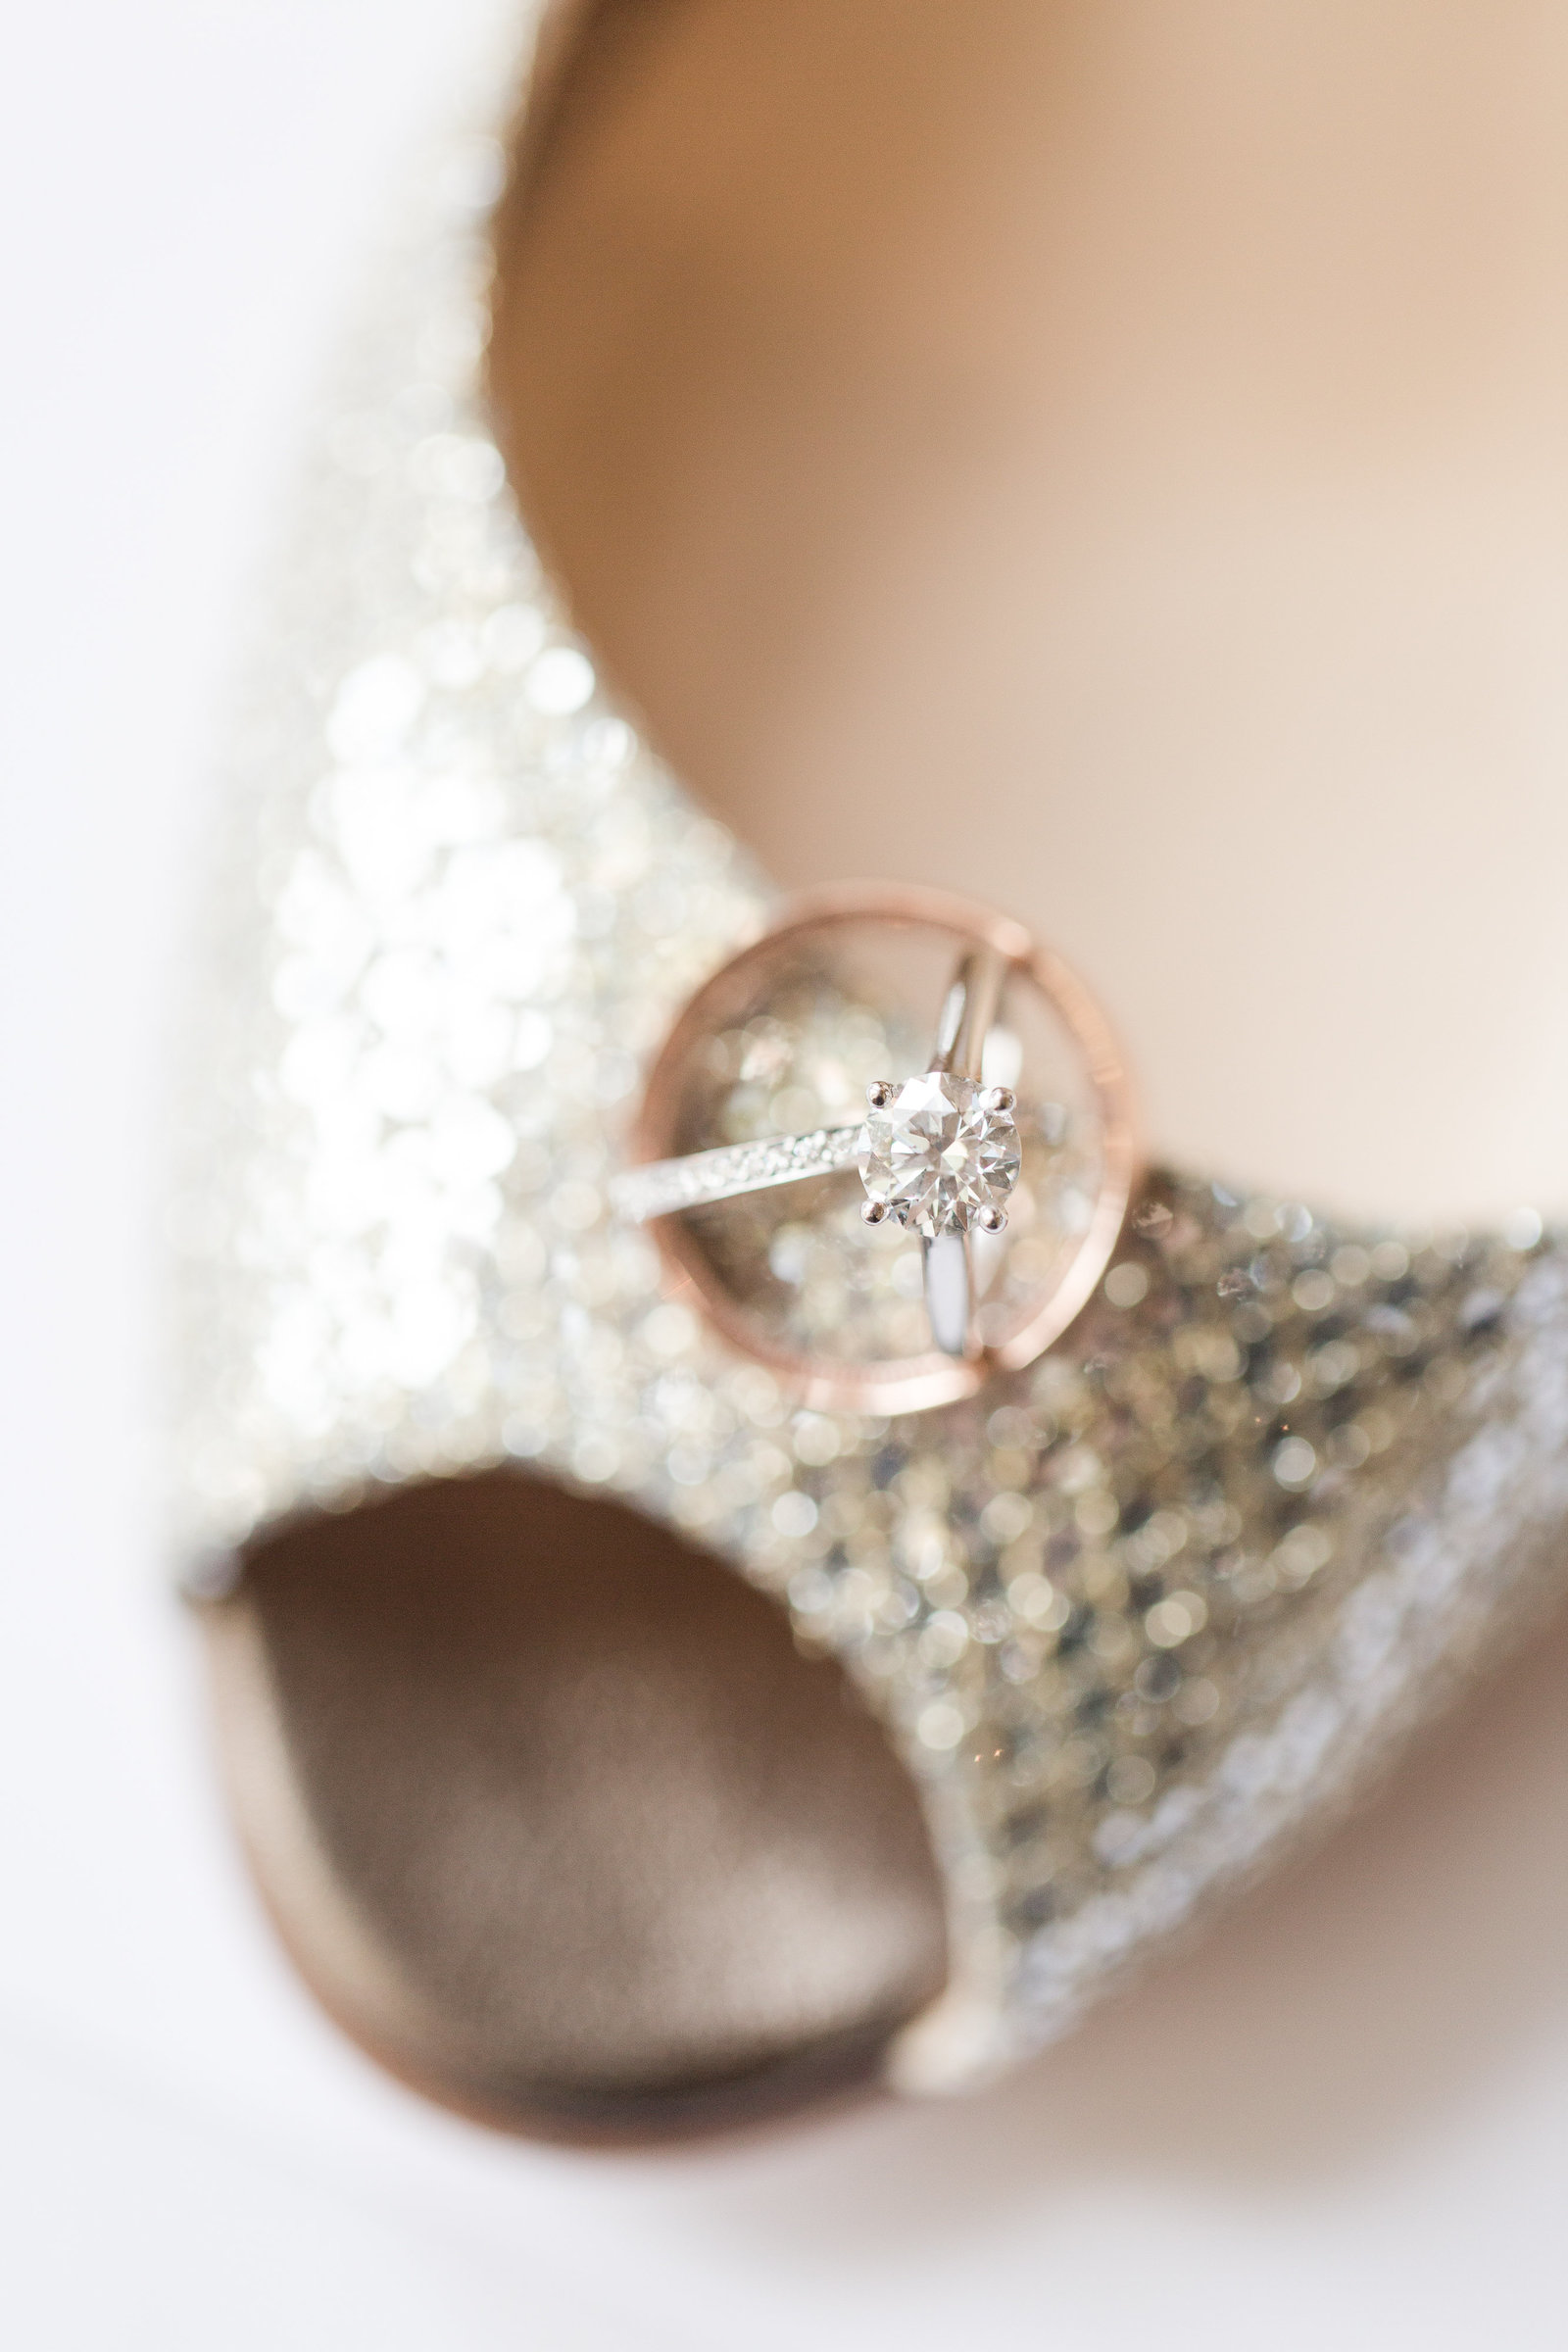 jimmy choo and diamond engagement ring and rose gold wedding band